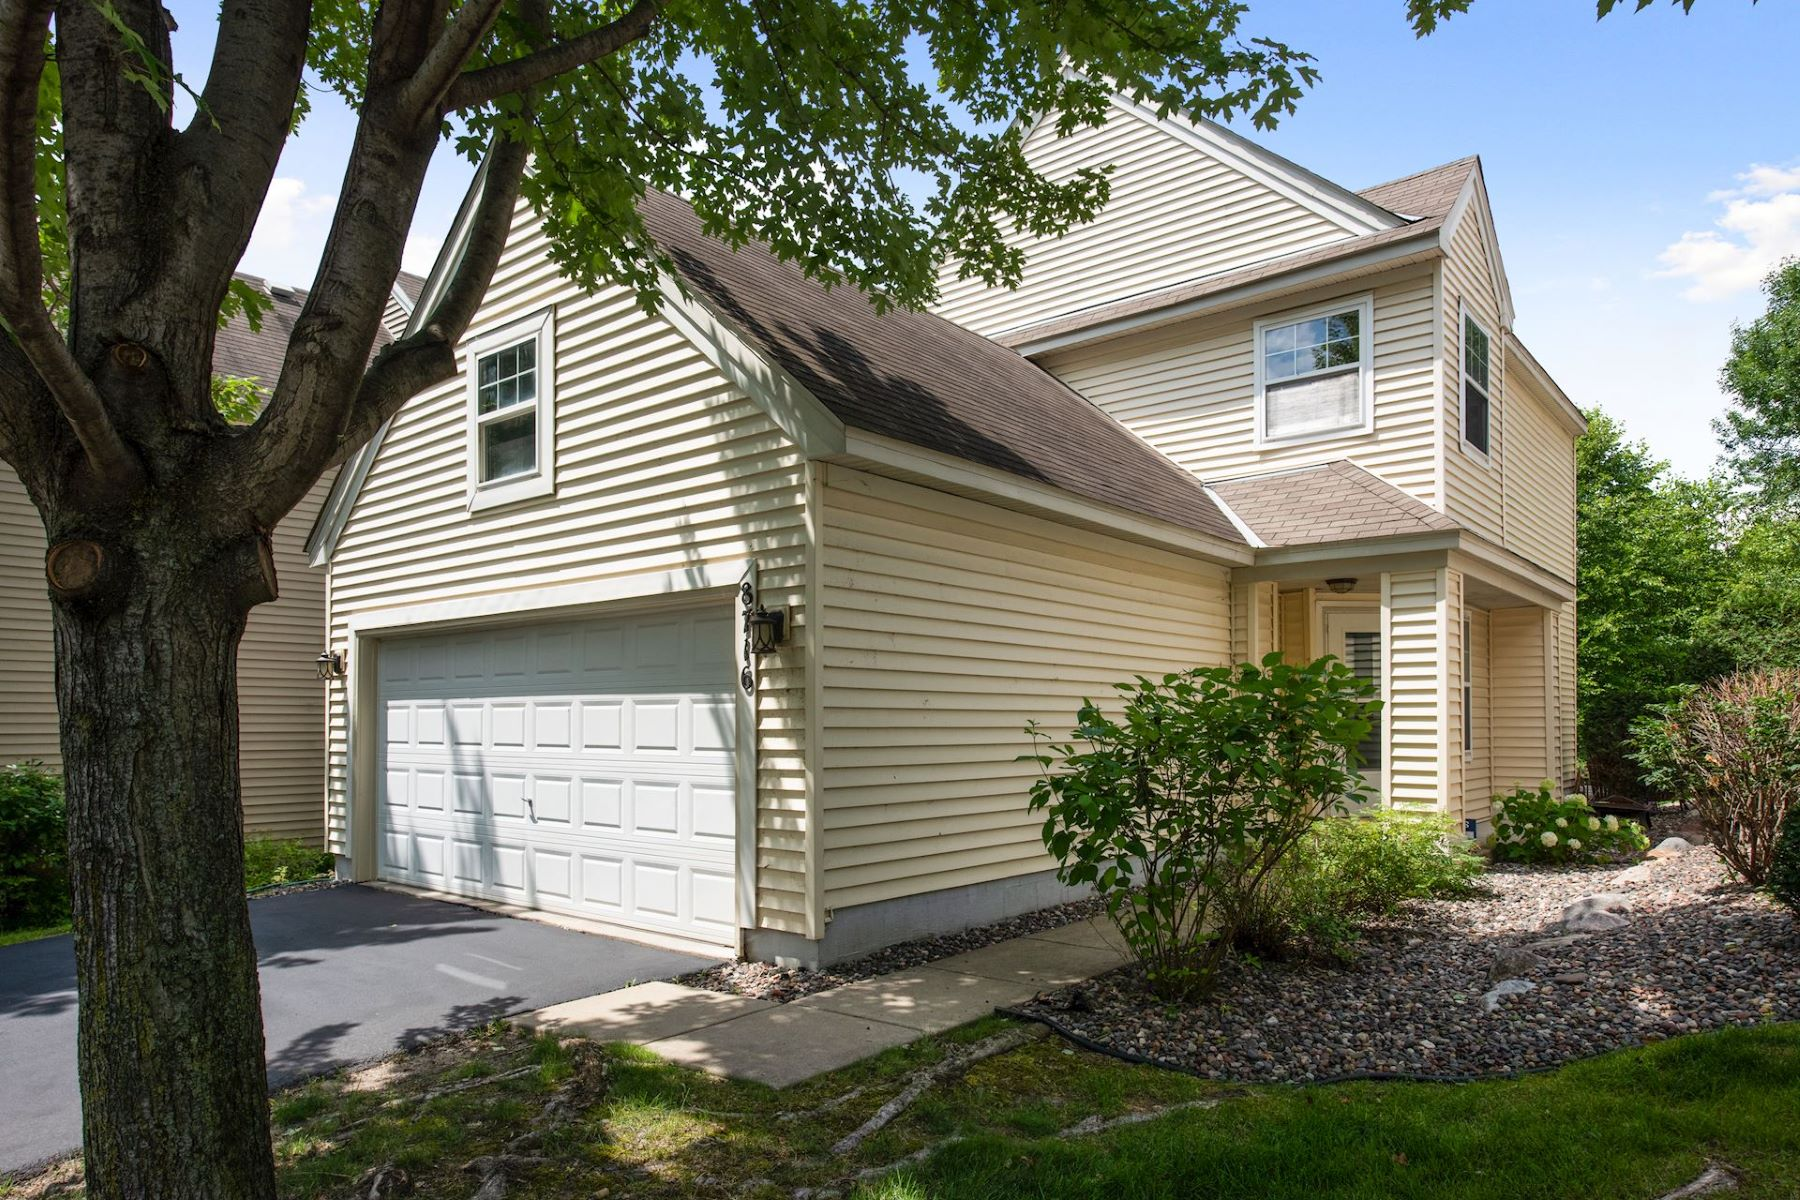 townhouses للـ Sale في Highly Desired Detached Townhouse with Lake Riley Assoc. Access 8716 North Bay Drive, Chanhassen, Minnesota 55317 United States